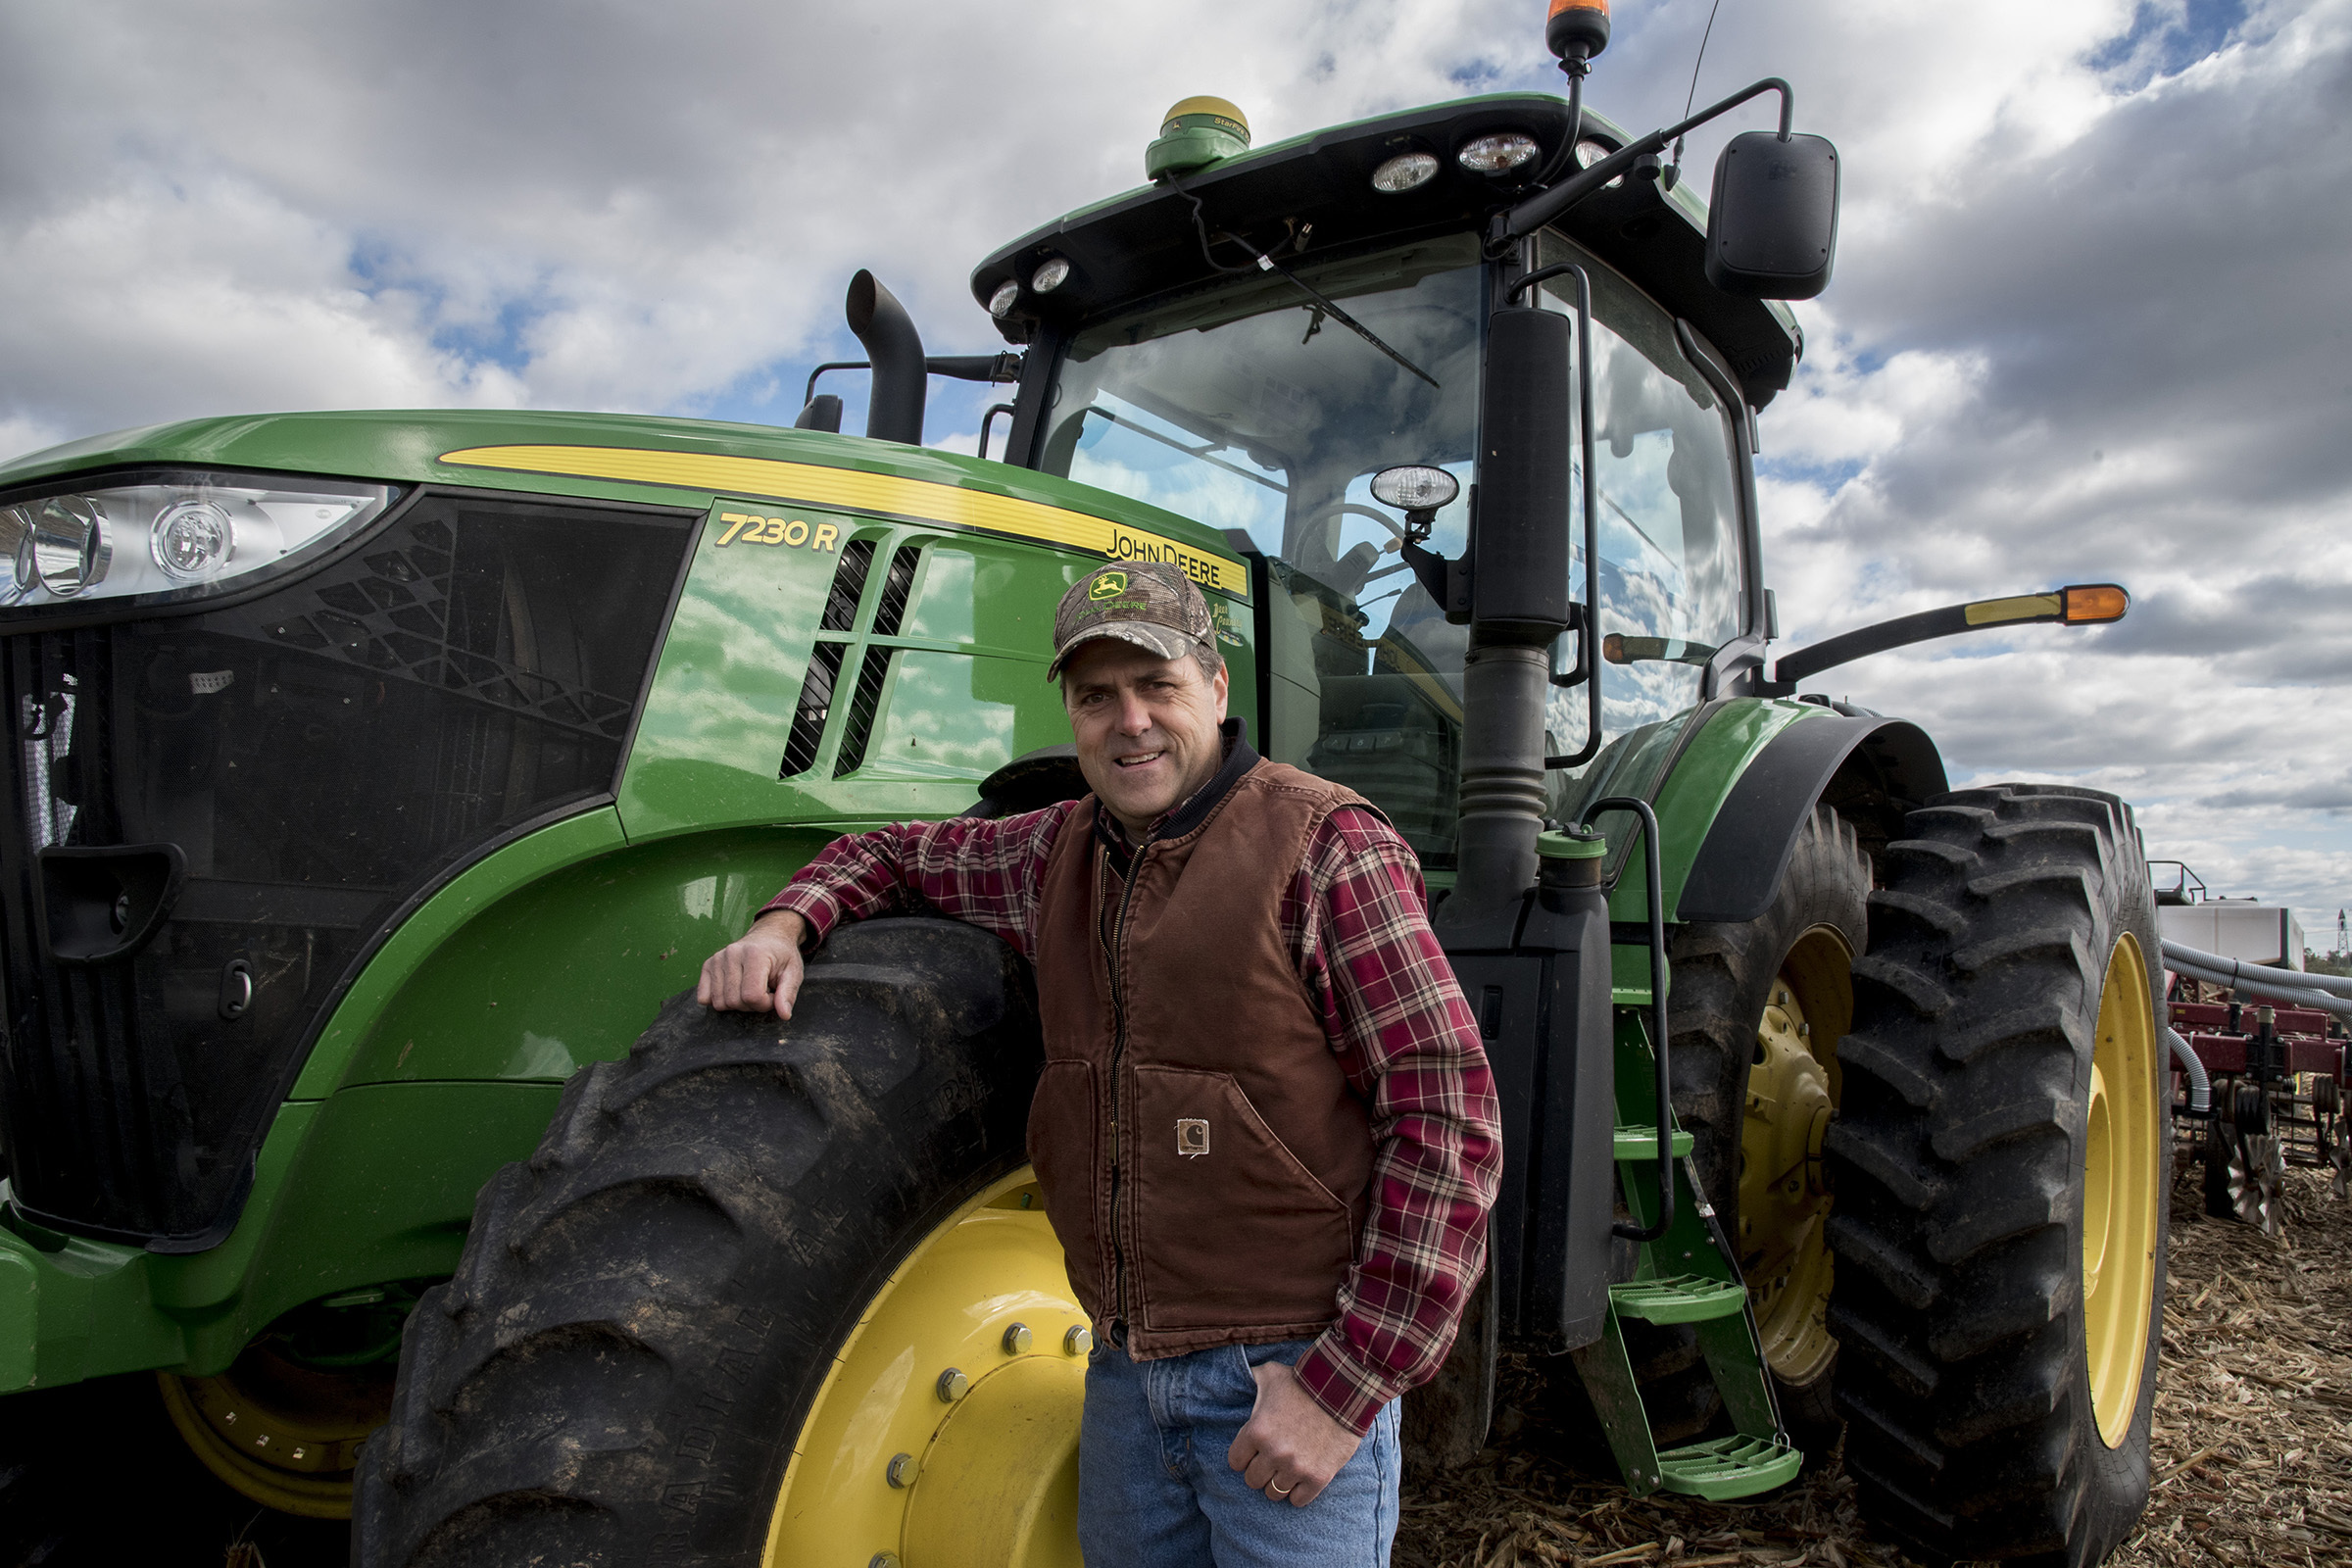 Don Cairns, 51, Chester County´s 2017 Farmer of the Year, grows corn, soybeans and wheat on 1,650 acres of his owned and leased land in and around his Parkesburg home.